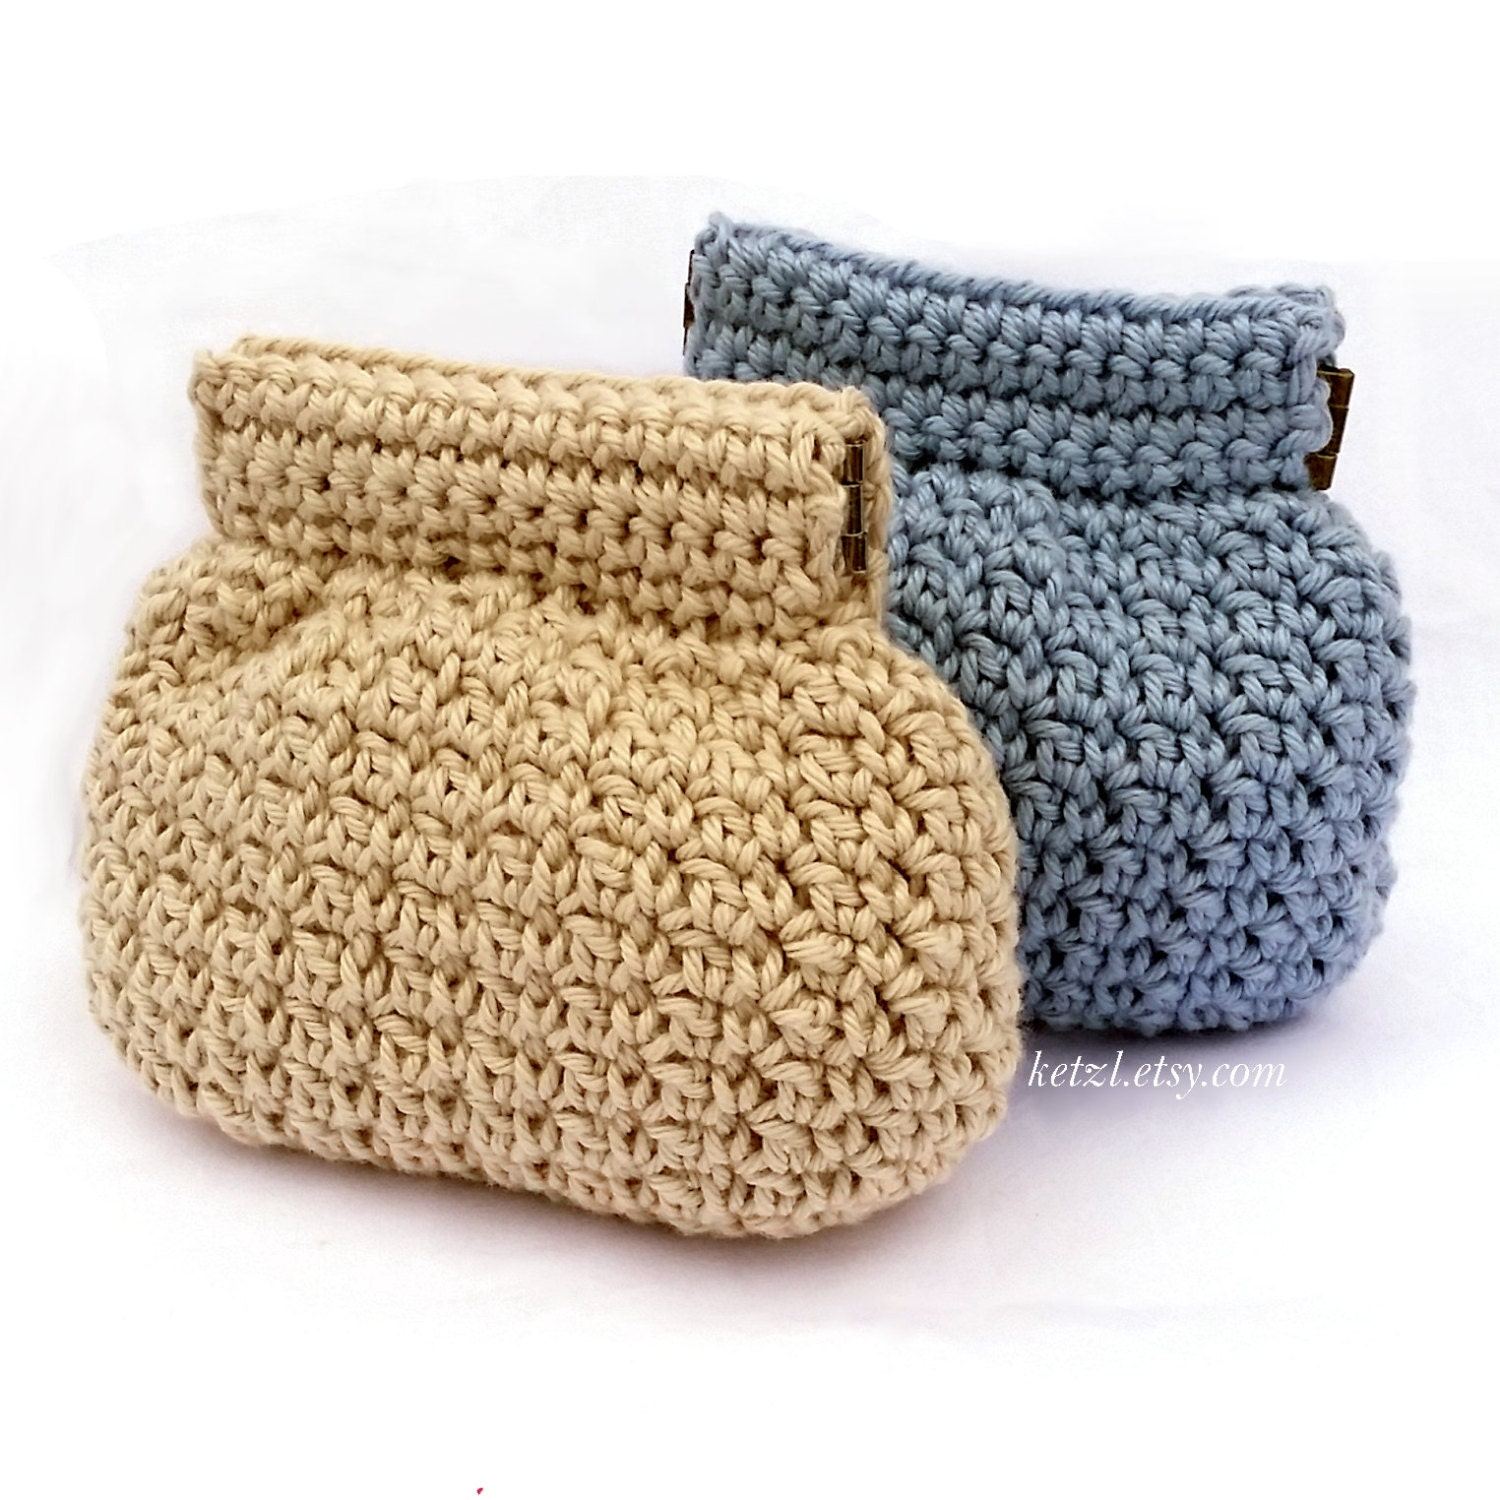 Purse crochet pattern coin purse pouch small squeeze frame by ketzl ...